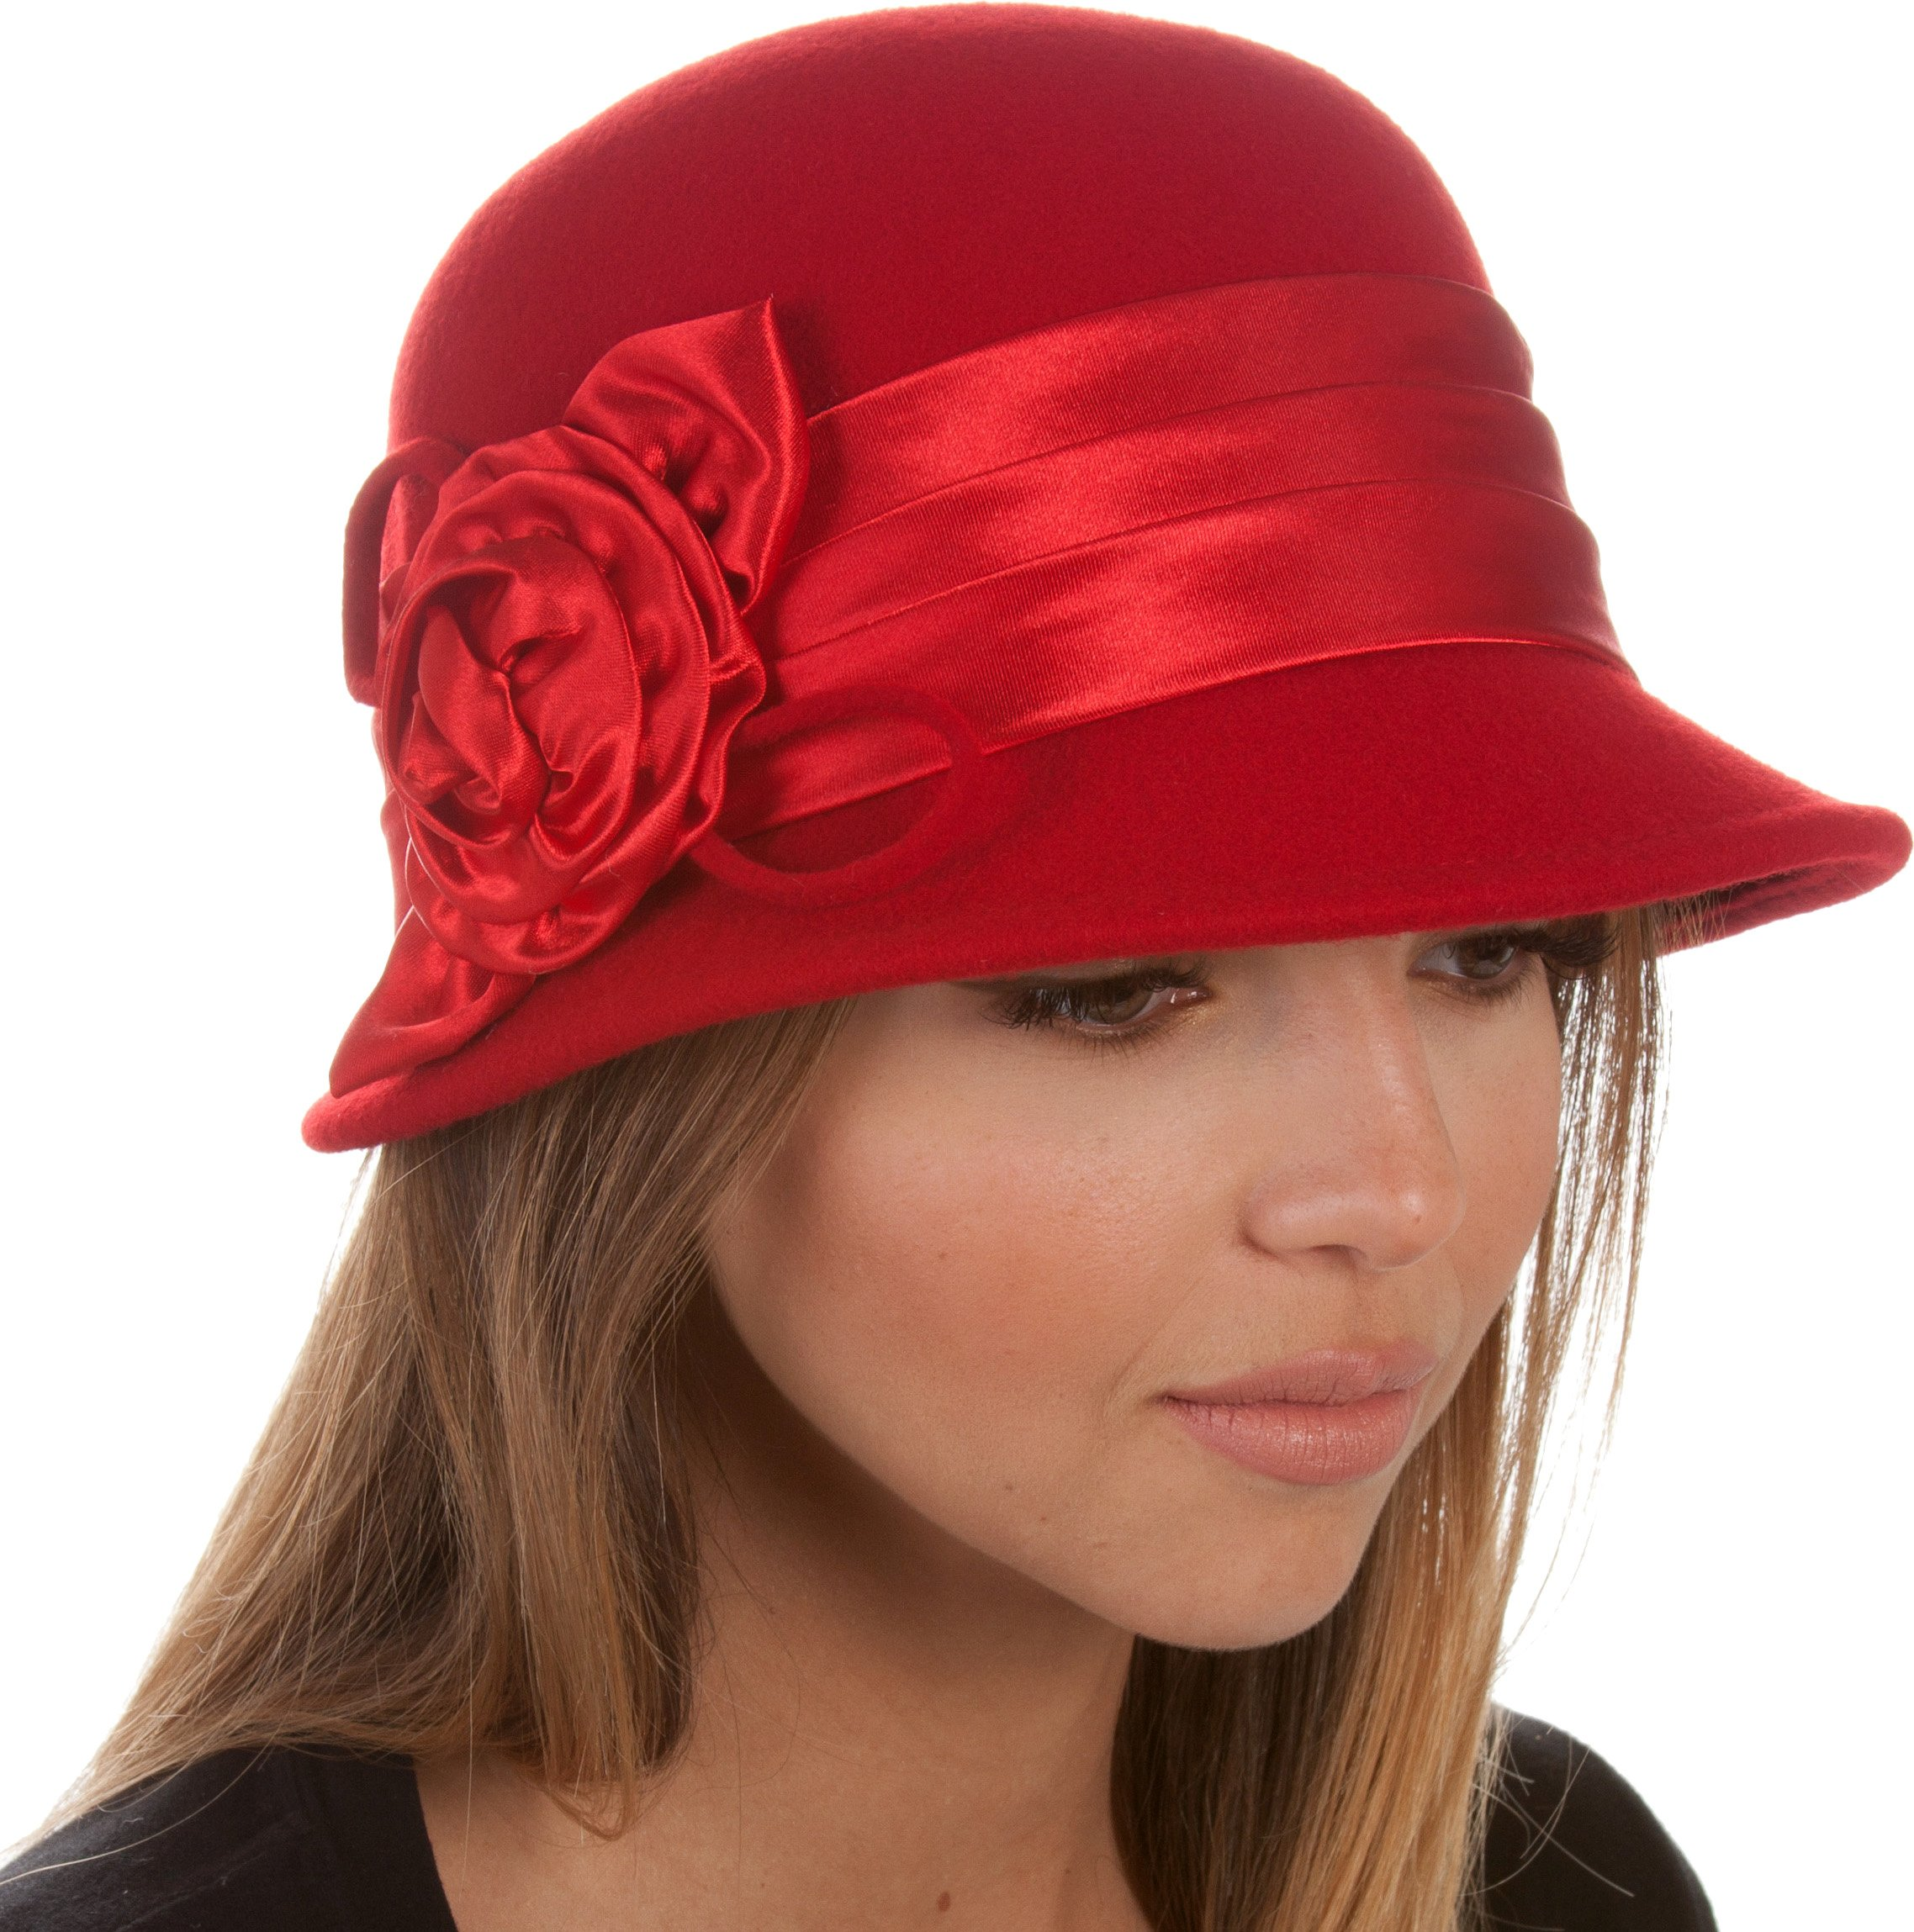 EH1121LC - Womens Vintage Style 100% Wool Cloche Bucket Winter Hat with Satin Flower Accent (6 Colors) - Red/One Size